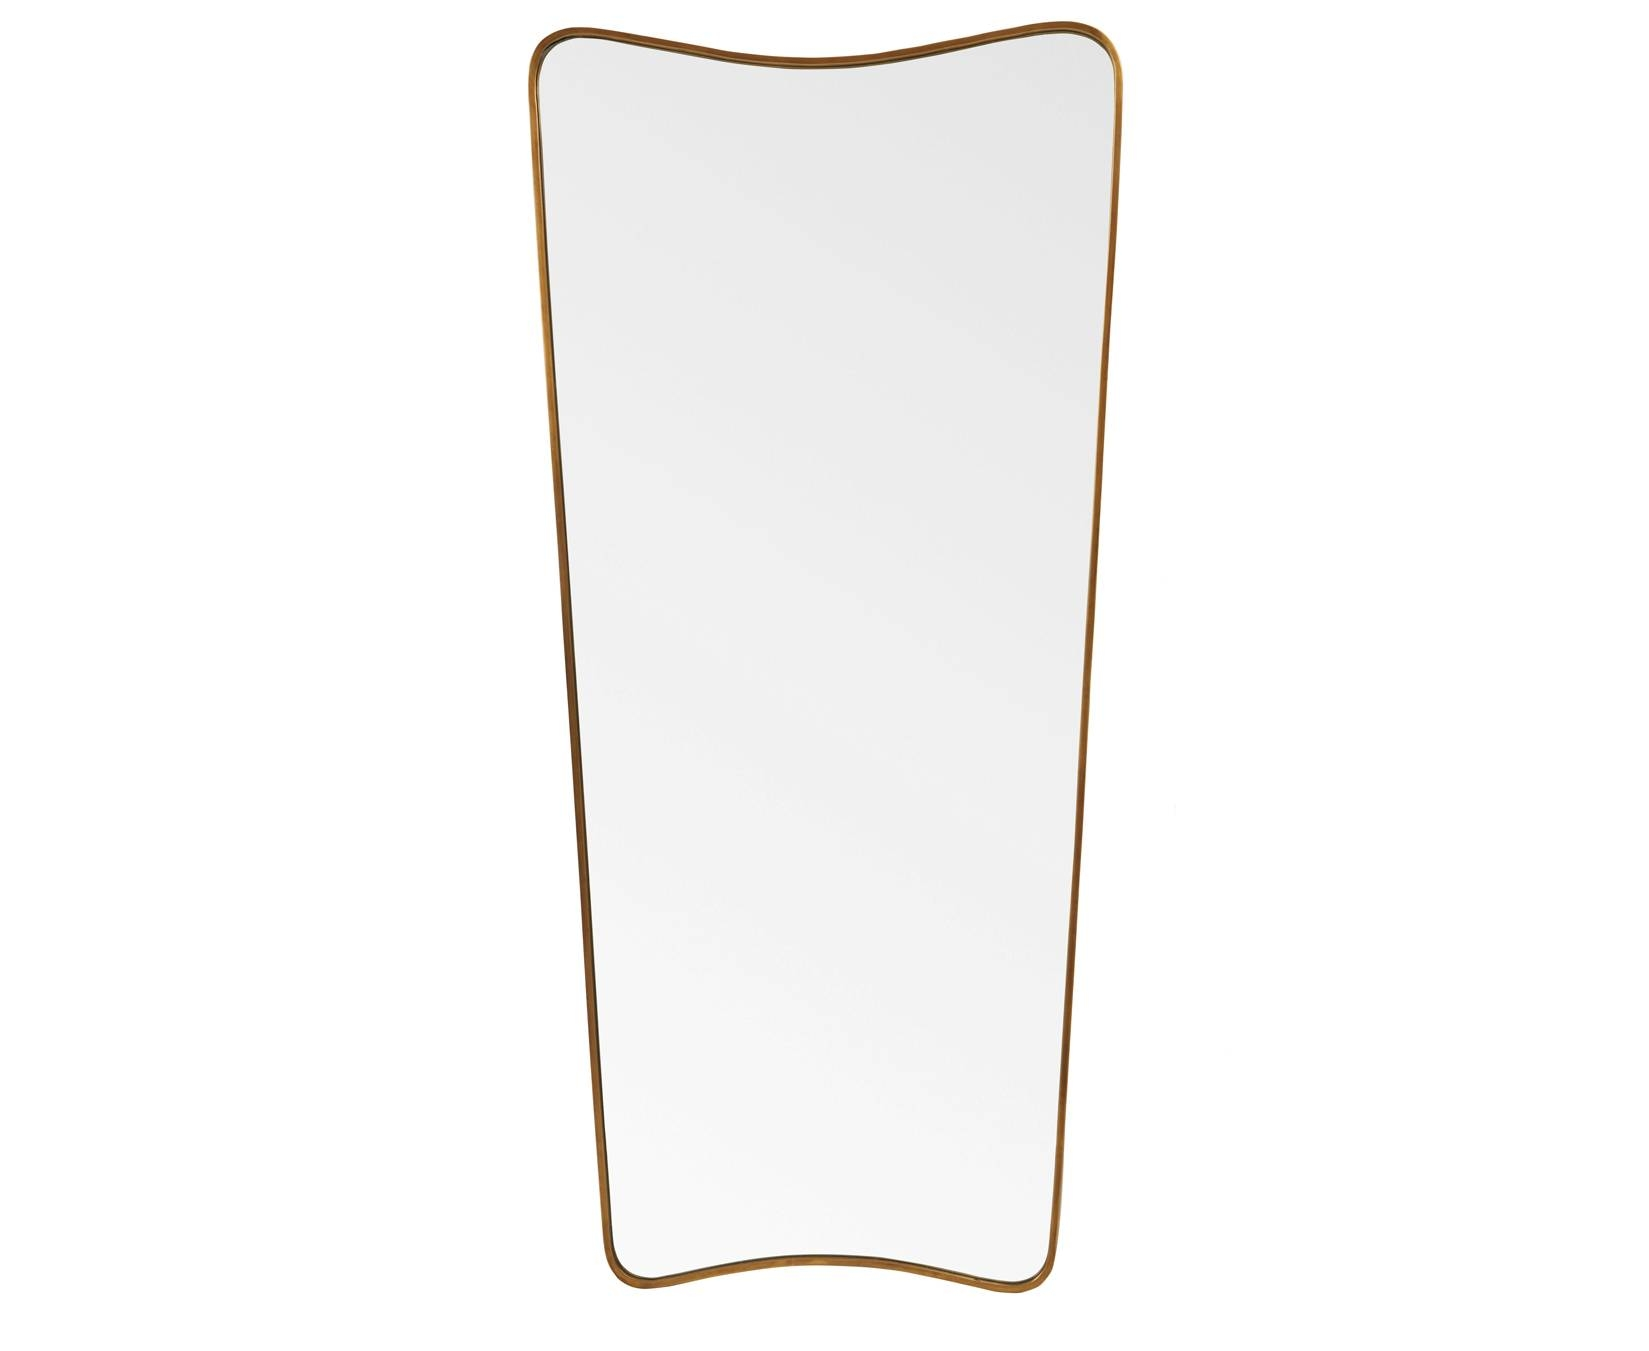 Top Brass Mirror | Retro Full Length Mirror | Loaf | Loaf for Full Length Vintage Standing Mirrors (Image 24 of 25)